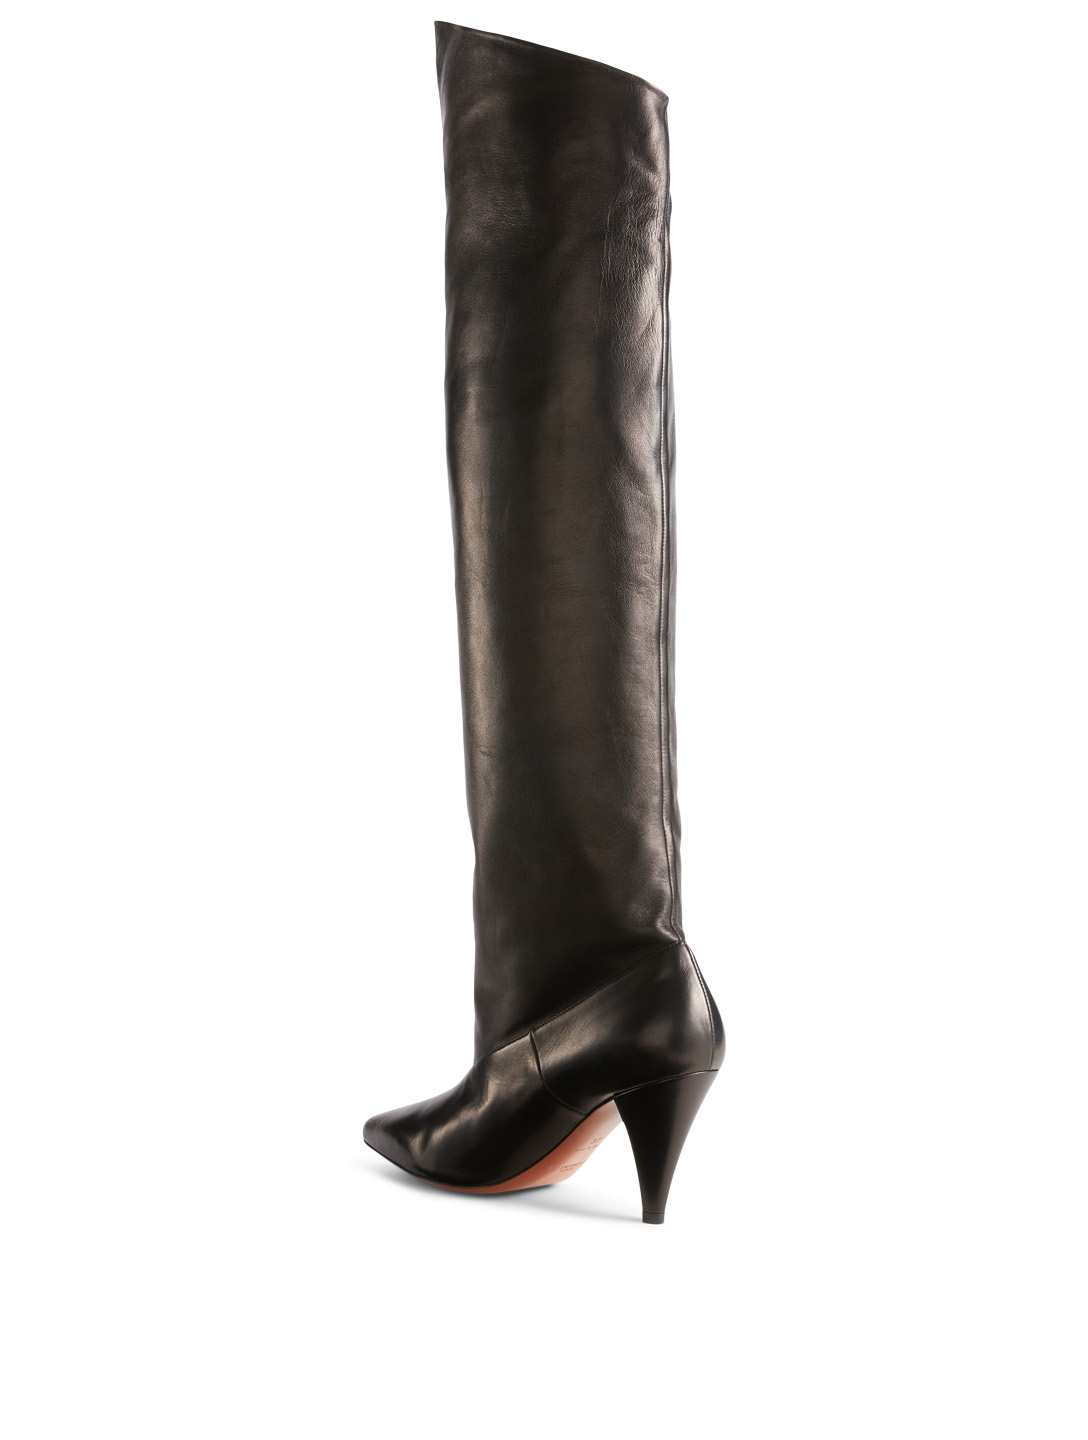 GIVENCHY Leather Knee-High Boots Womens Black